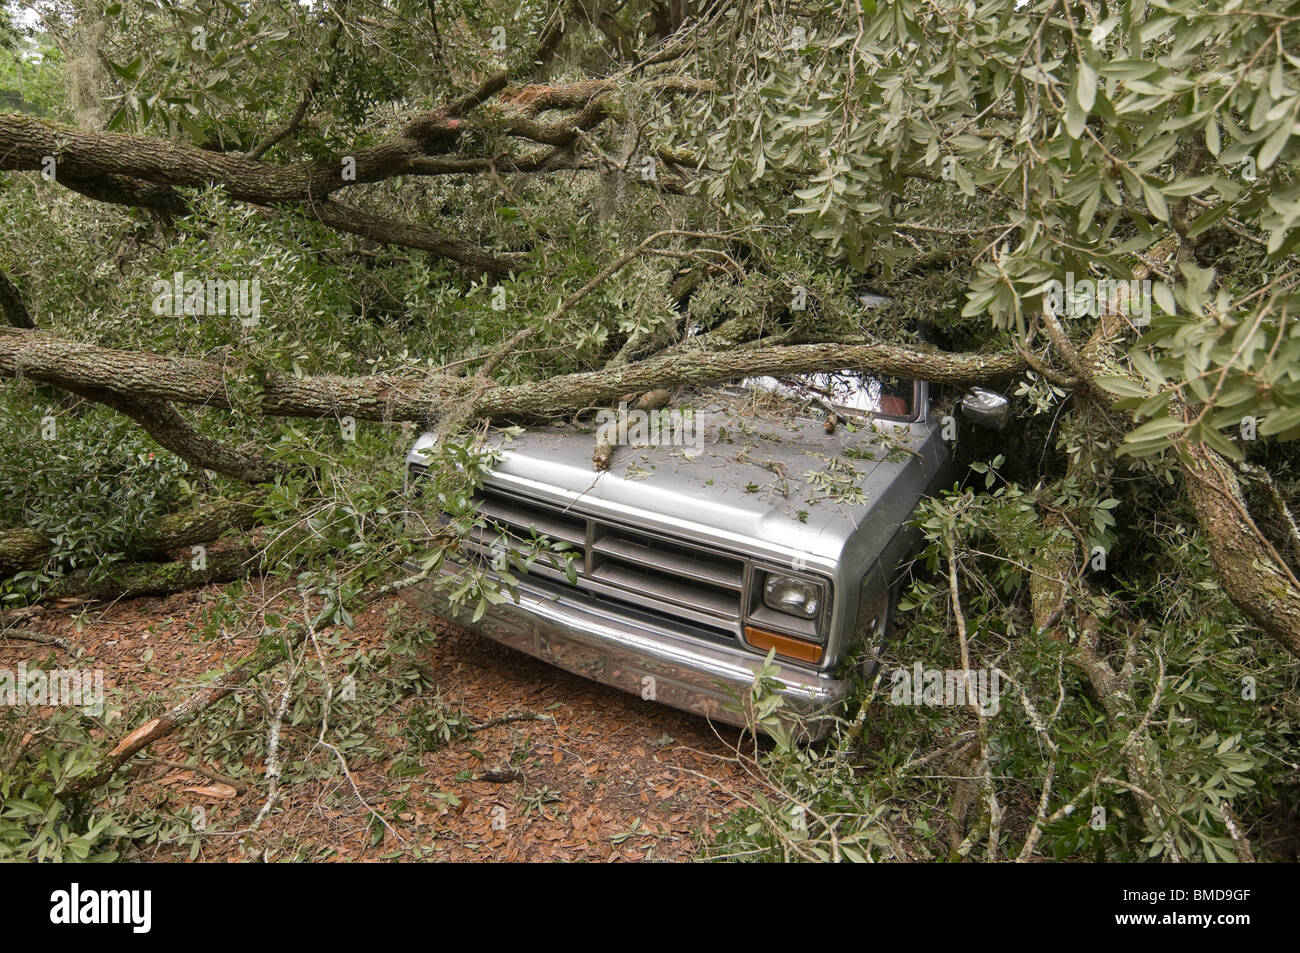 giant live oak tree splits in half and falls on house and auto, Alachua Florida Stock Photo